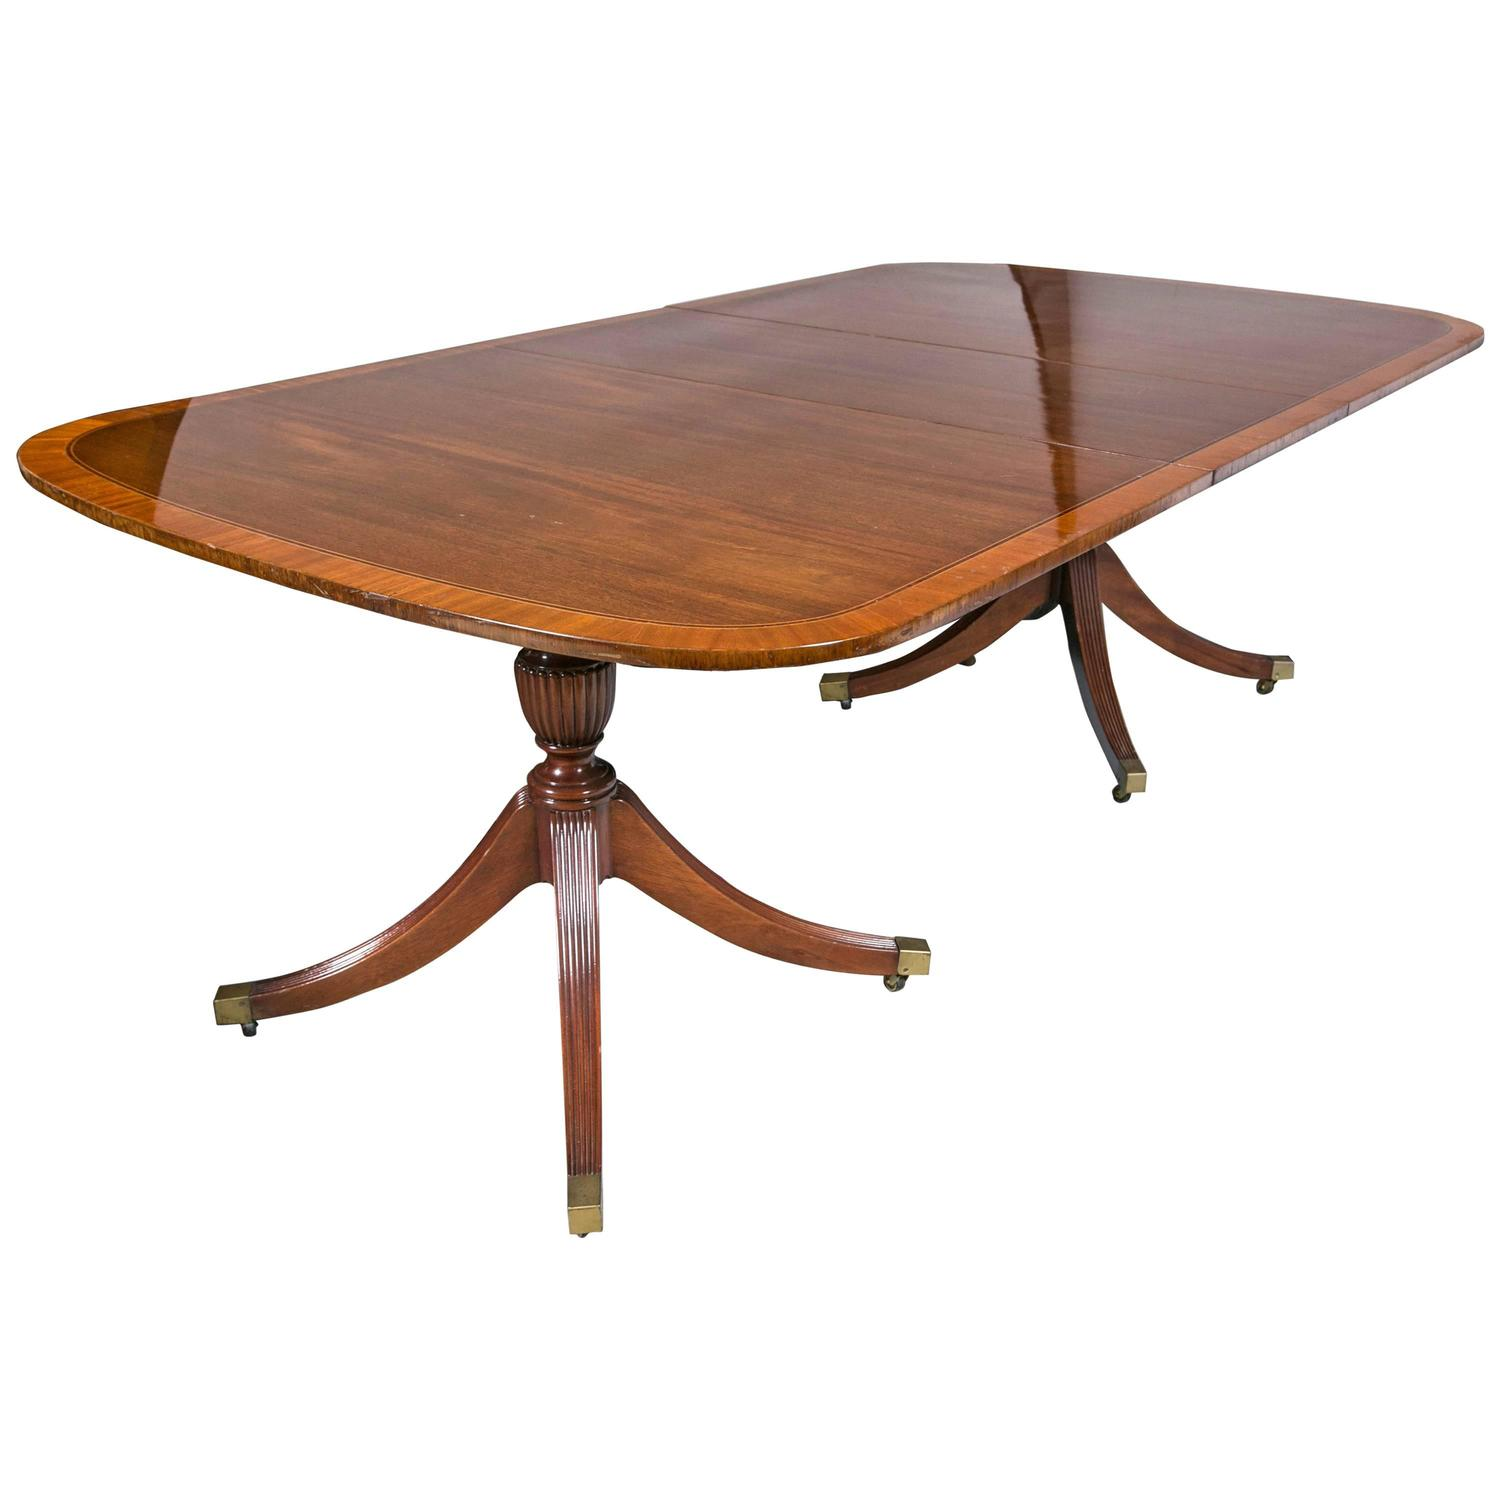 Georgian Style Mahogany Banded Dining Table By Baker With